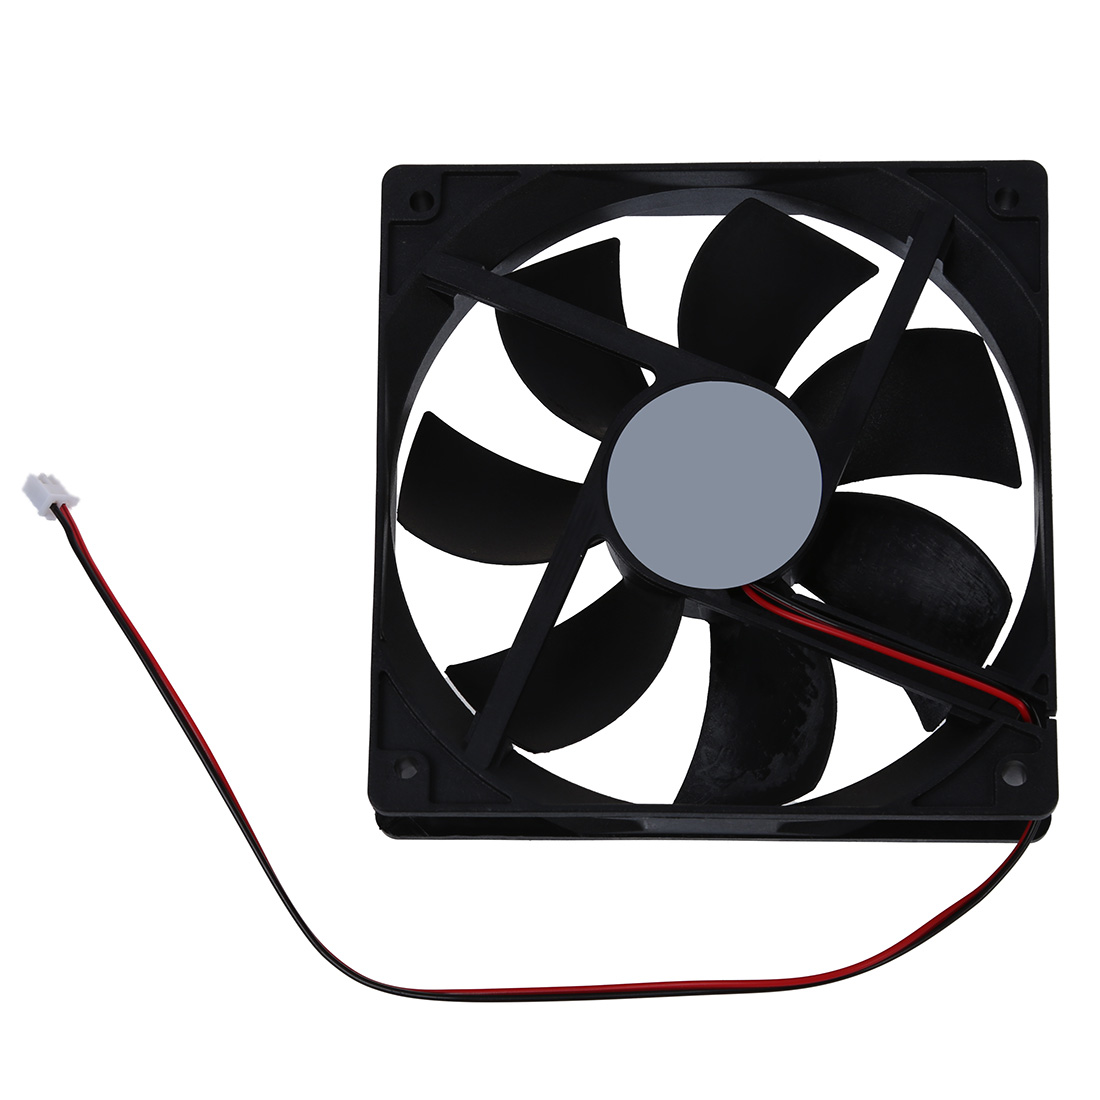 120mm X 25mm 12V 2Pin Sleeve Bearing Cooling Fan For Computer Case